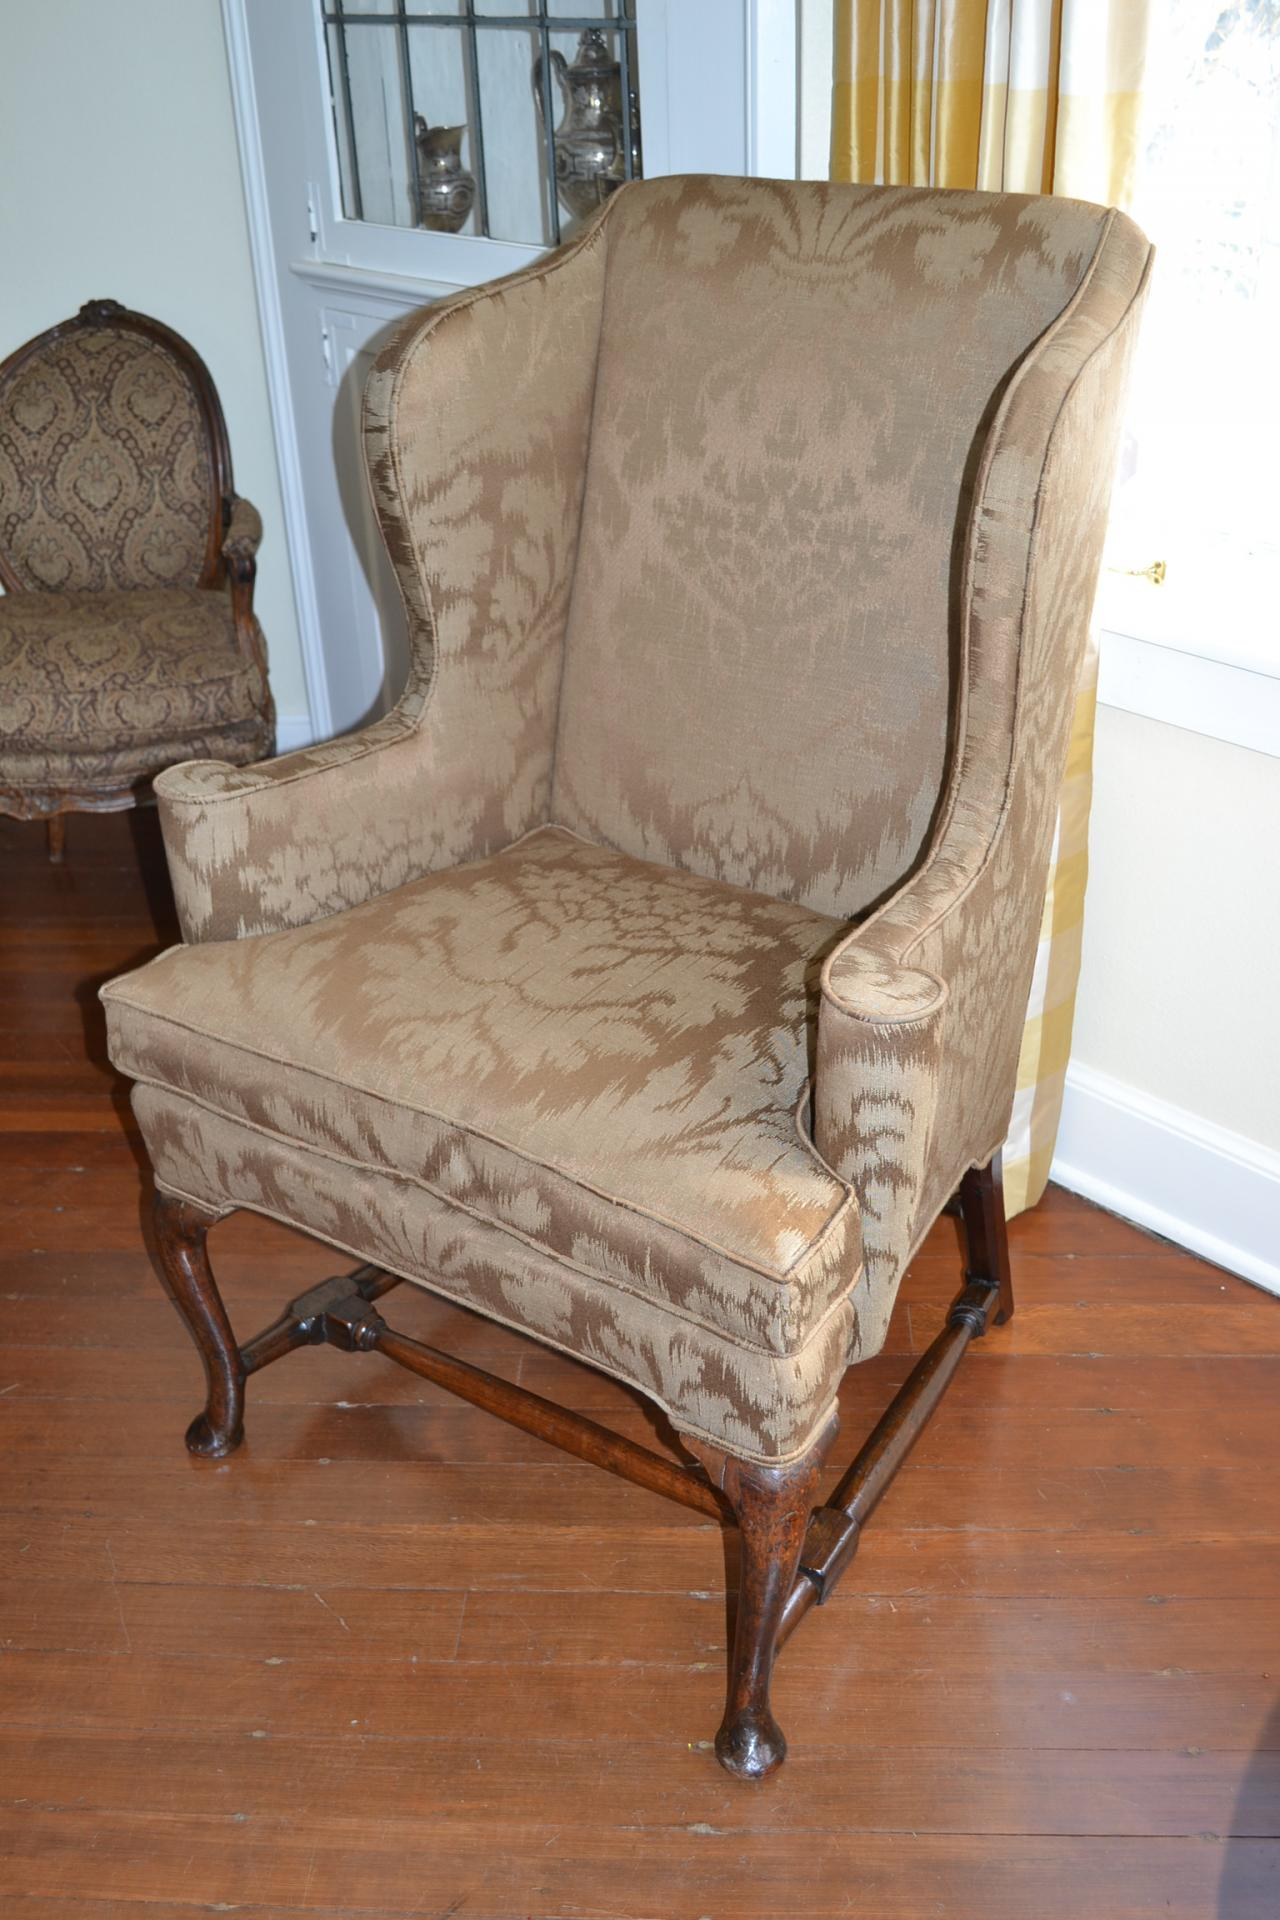 Top 20 Homewares At Kmart as well Queen Anne Wing Chair also 125 a Chippendale Mahogany Cabriole Leg Elbow Chair moreover Chinese Dining Room Set moreover Cart. on oriental chippendale chairs